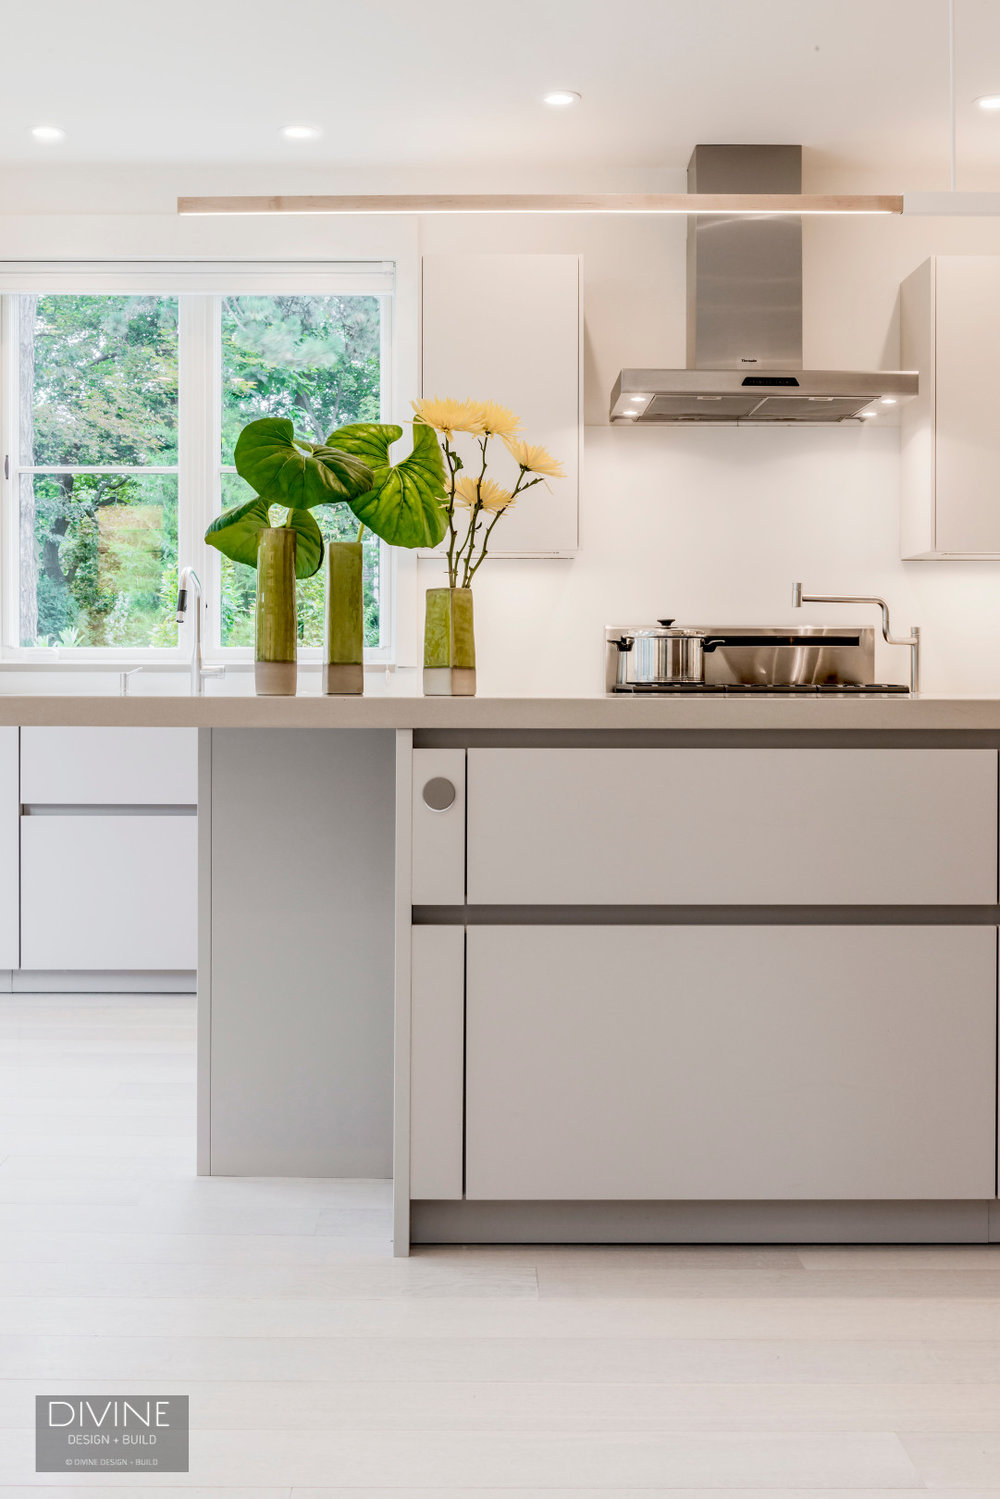 Matt white, modern leicht kitchen cabinets with brushed nickel accessories and walnut accents.